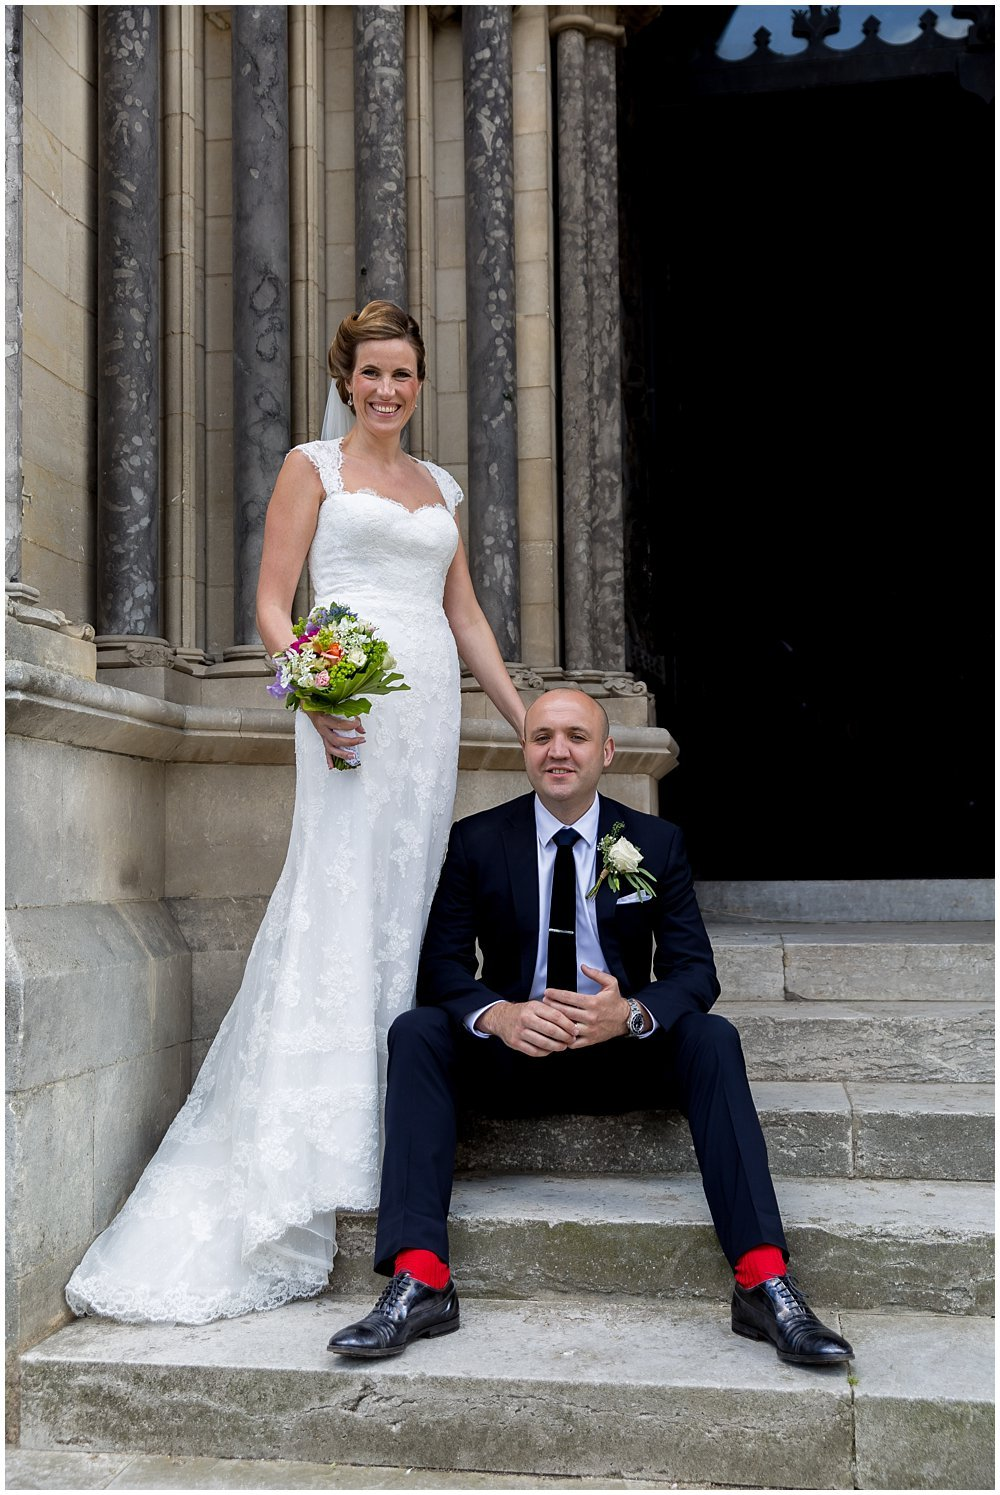 AMY AND DUNCAN NORWICH CATHEDRAL AND THE BOATHOUSE WEDDING - NORWICH AND NORFOLK WEDDING PHOTOGRAPHER 20